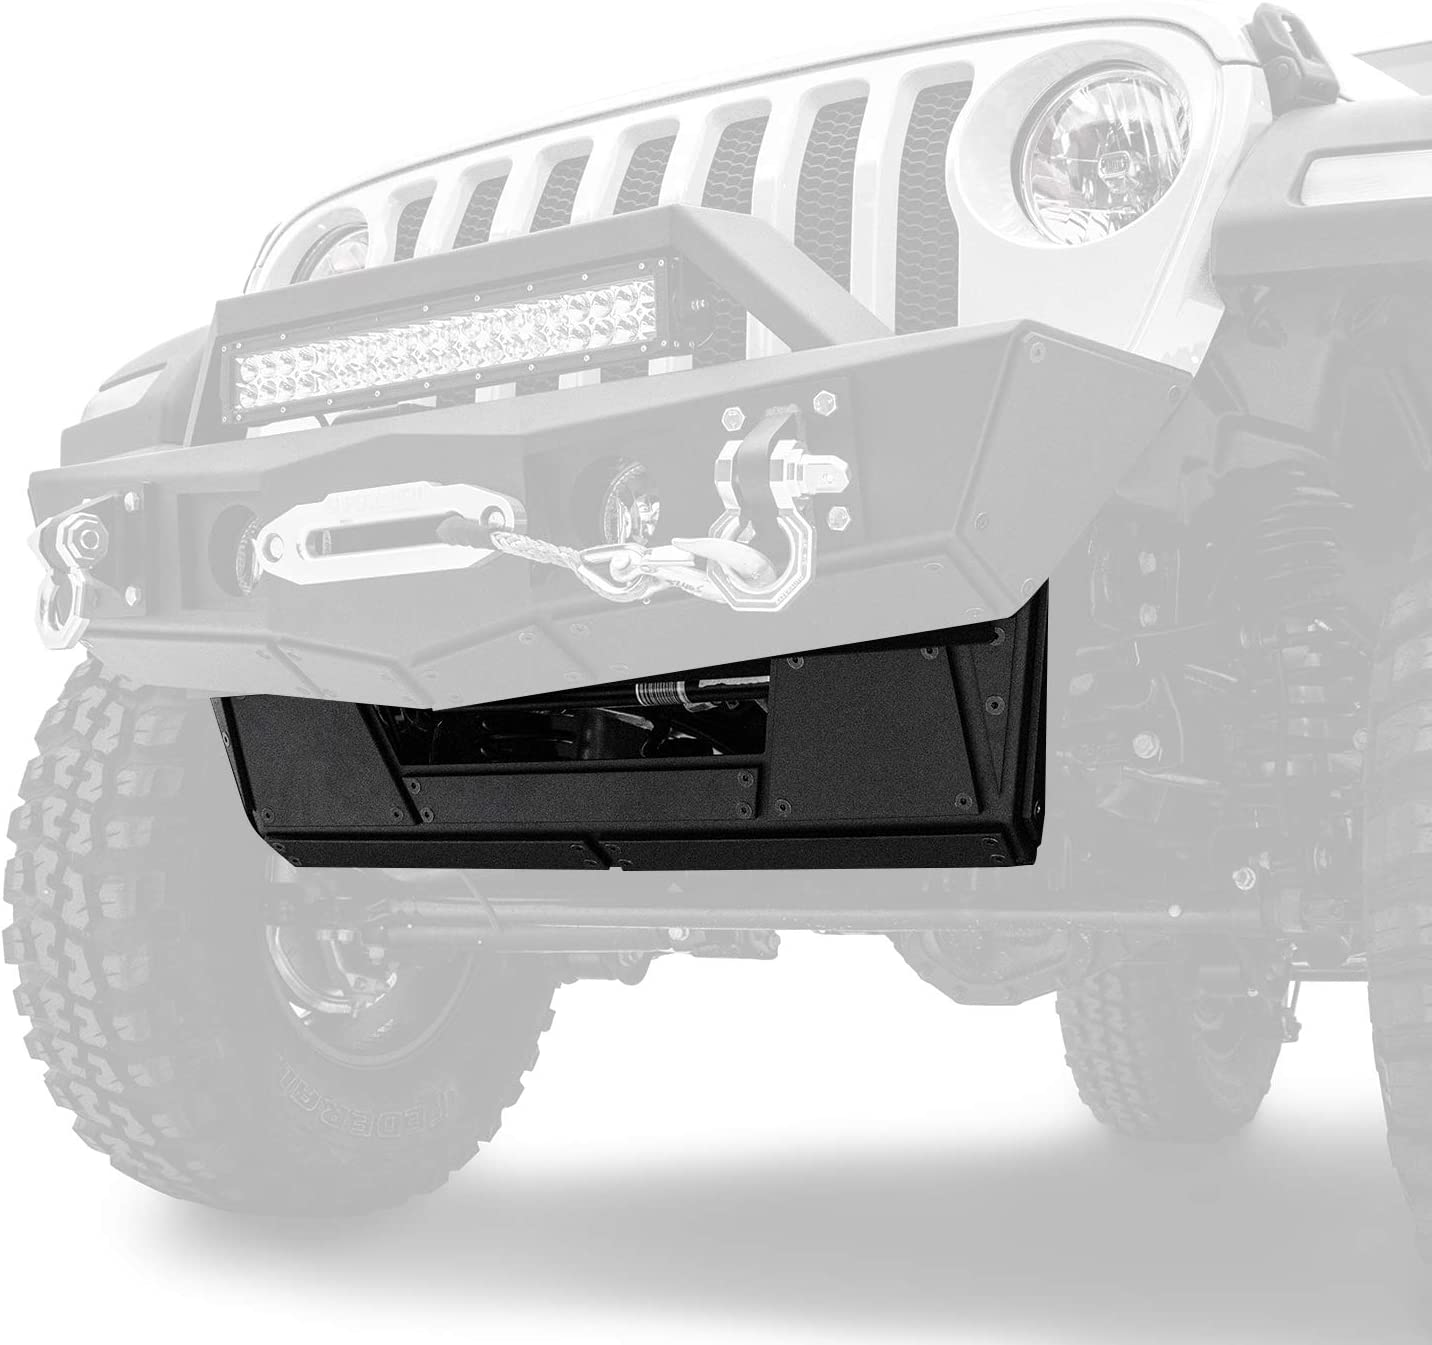 Razer Auto Plate Armor Skid for trend rank Up and Jeep Mesa Mall 18 Wrangler JL